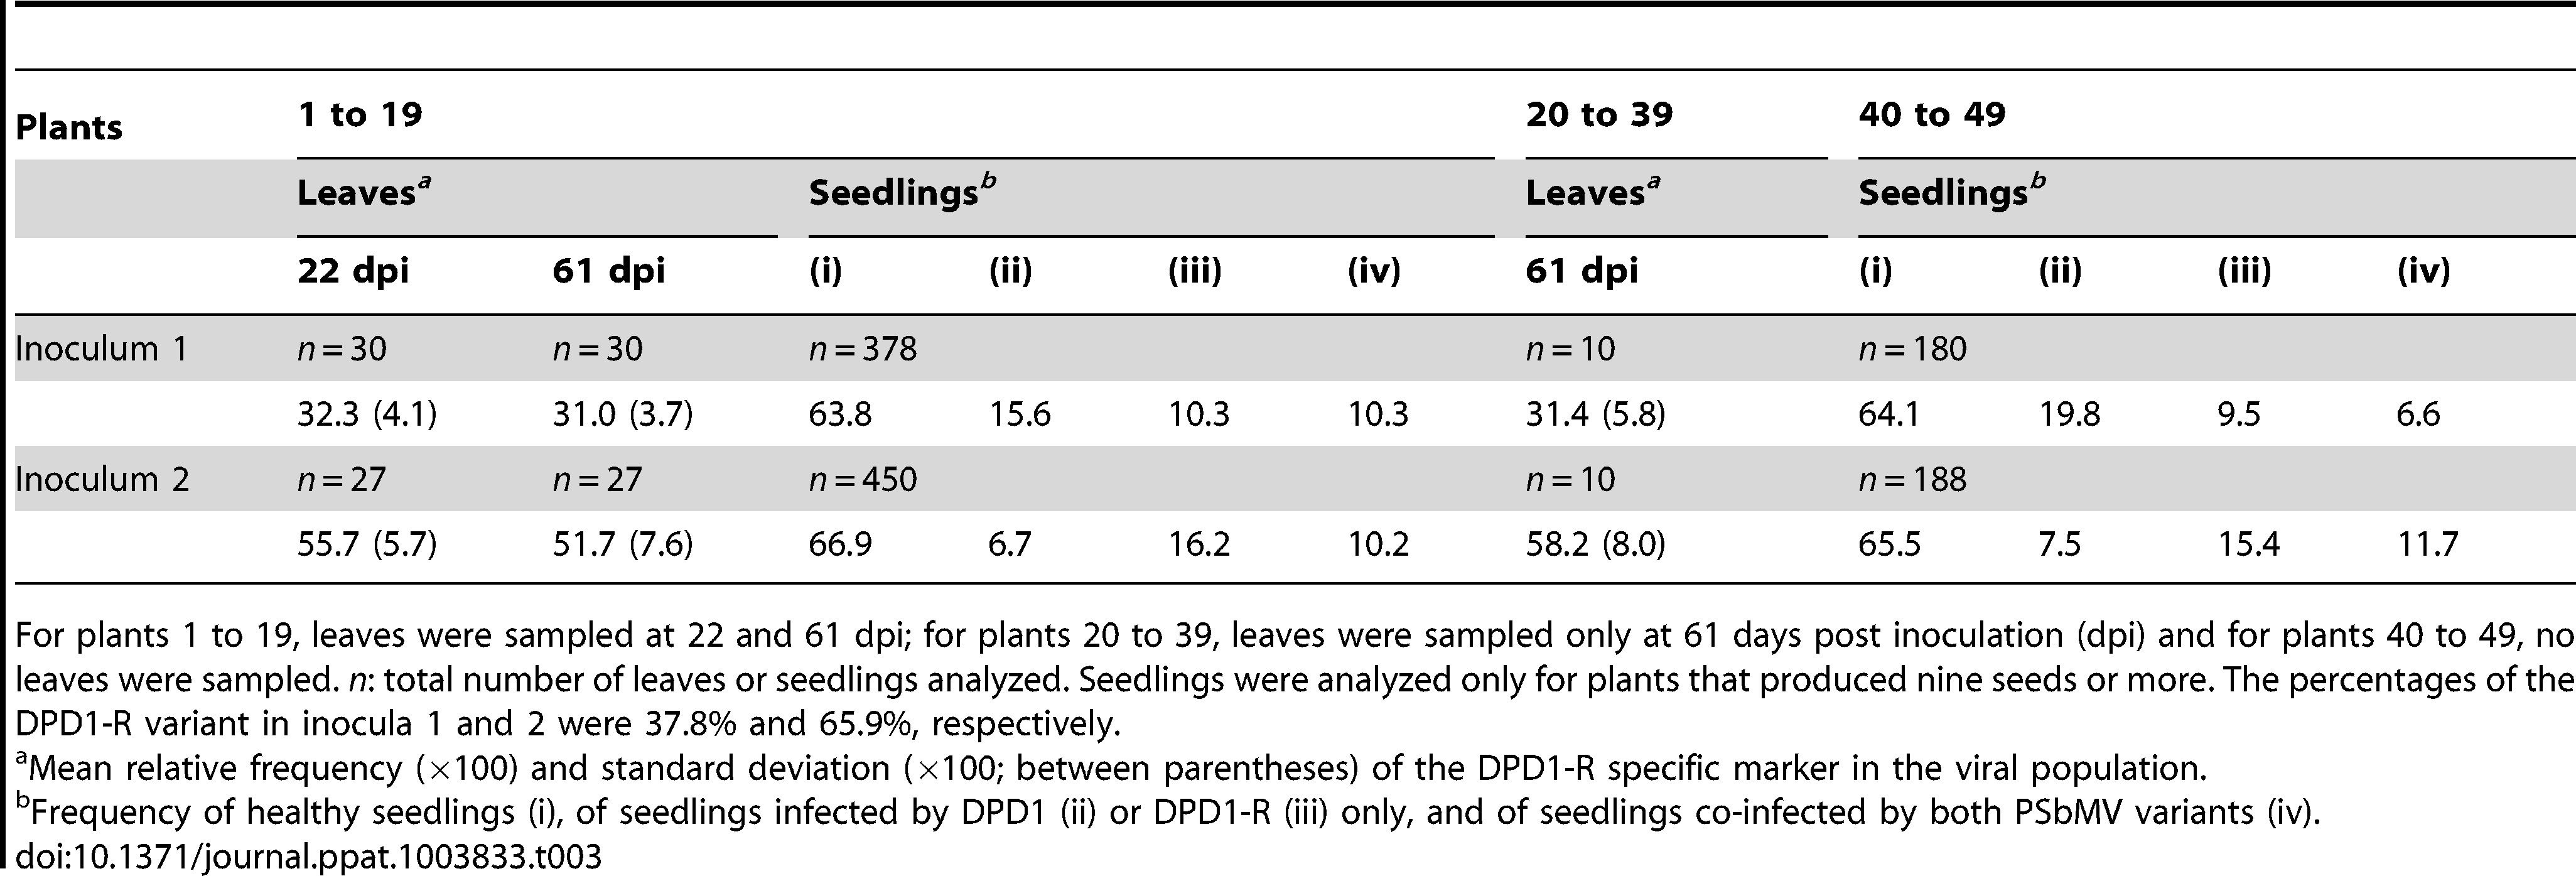 Frequency of two PSbMV variants in pea leaves and seedlings in three sets of plants corresponding to three sampling designs.